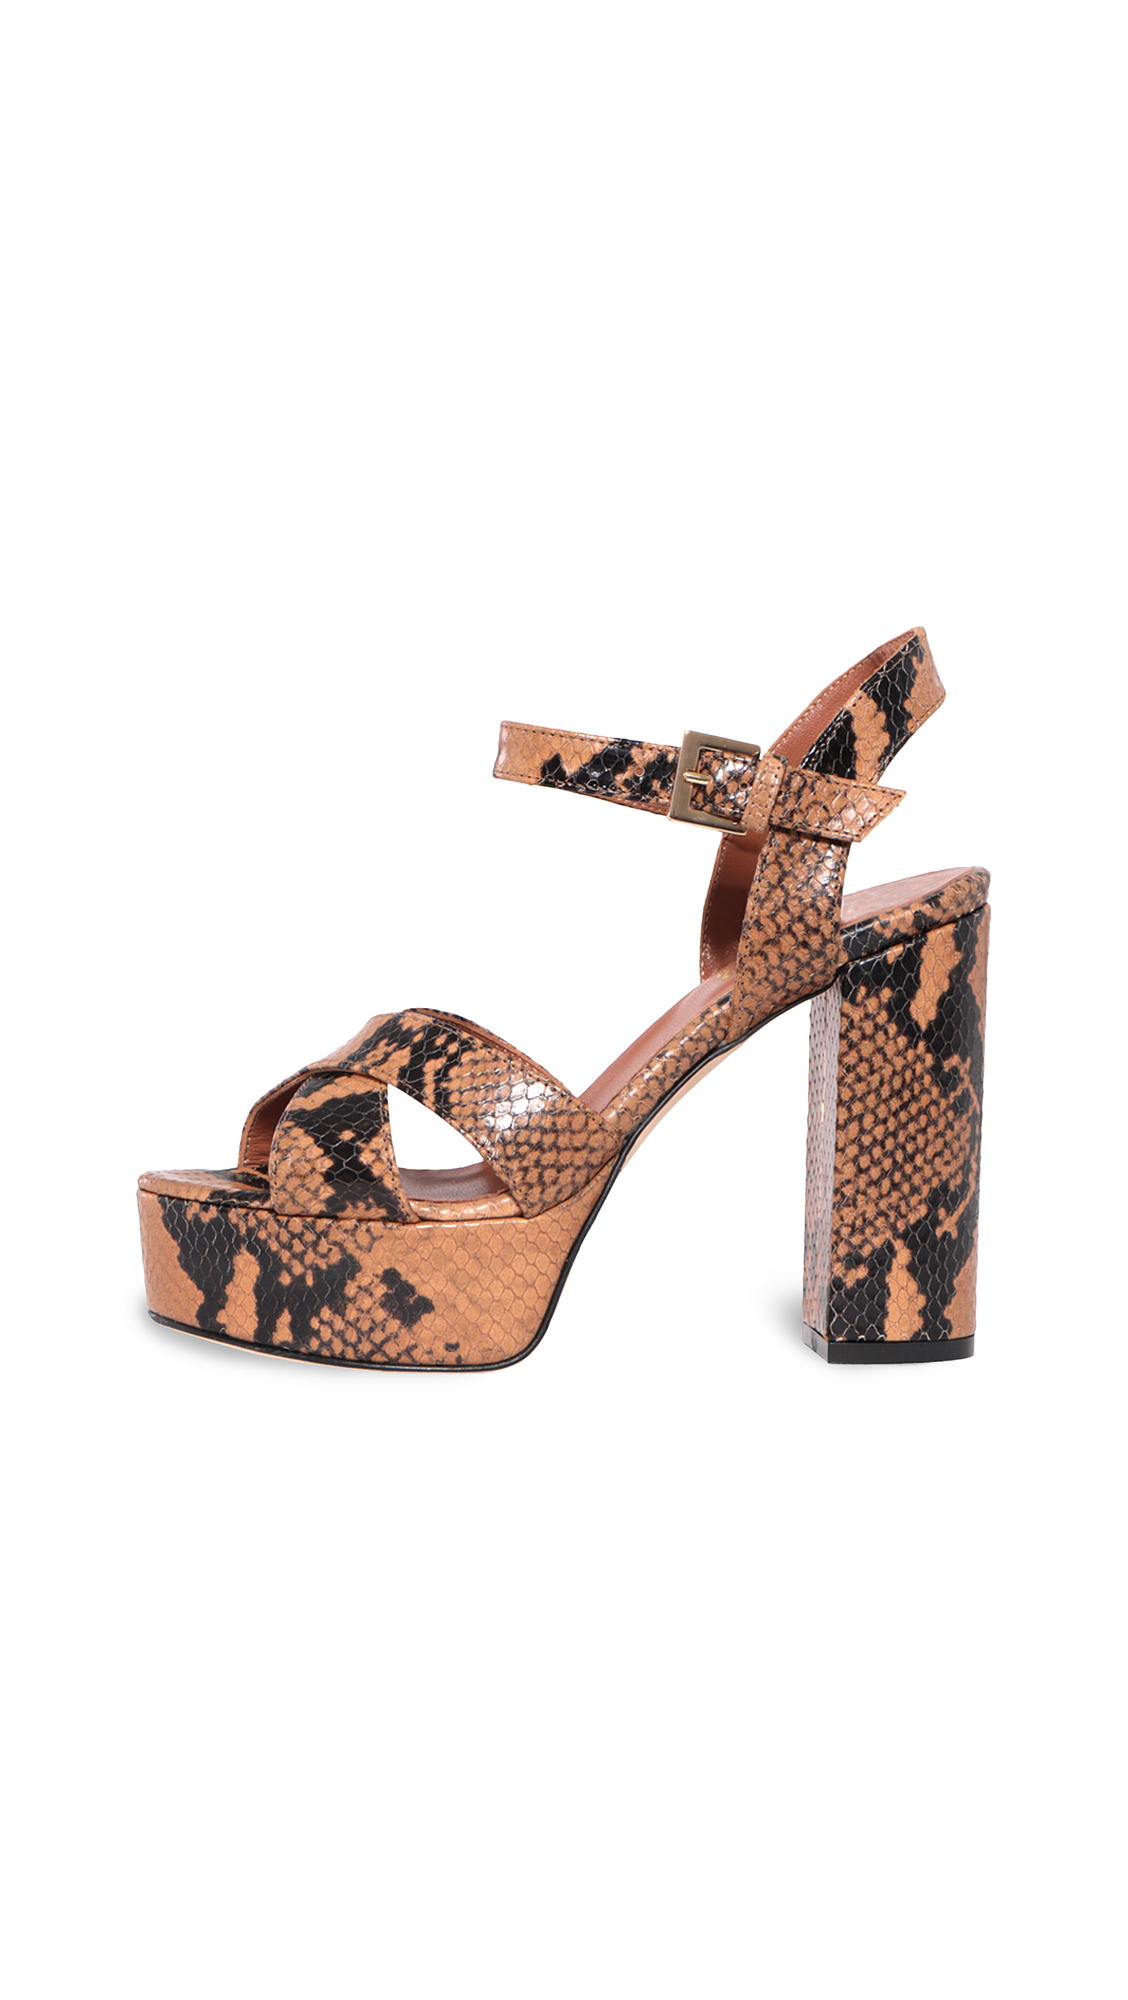 Paris Texas Python Print Platform Sandals